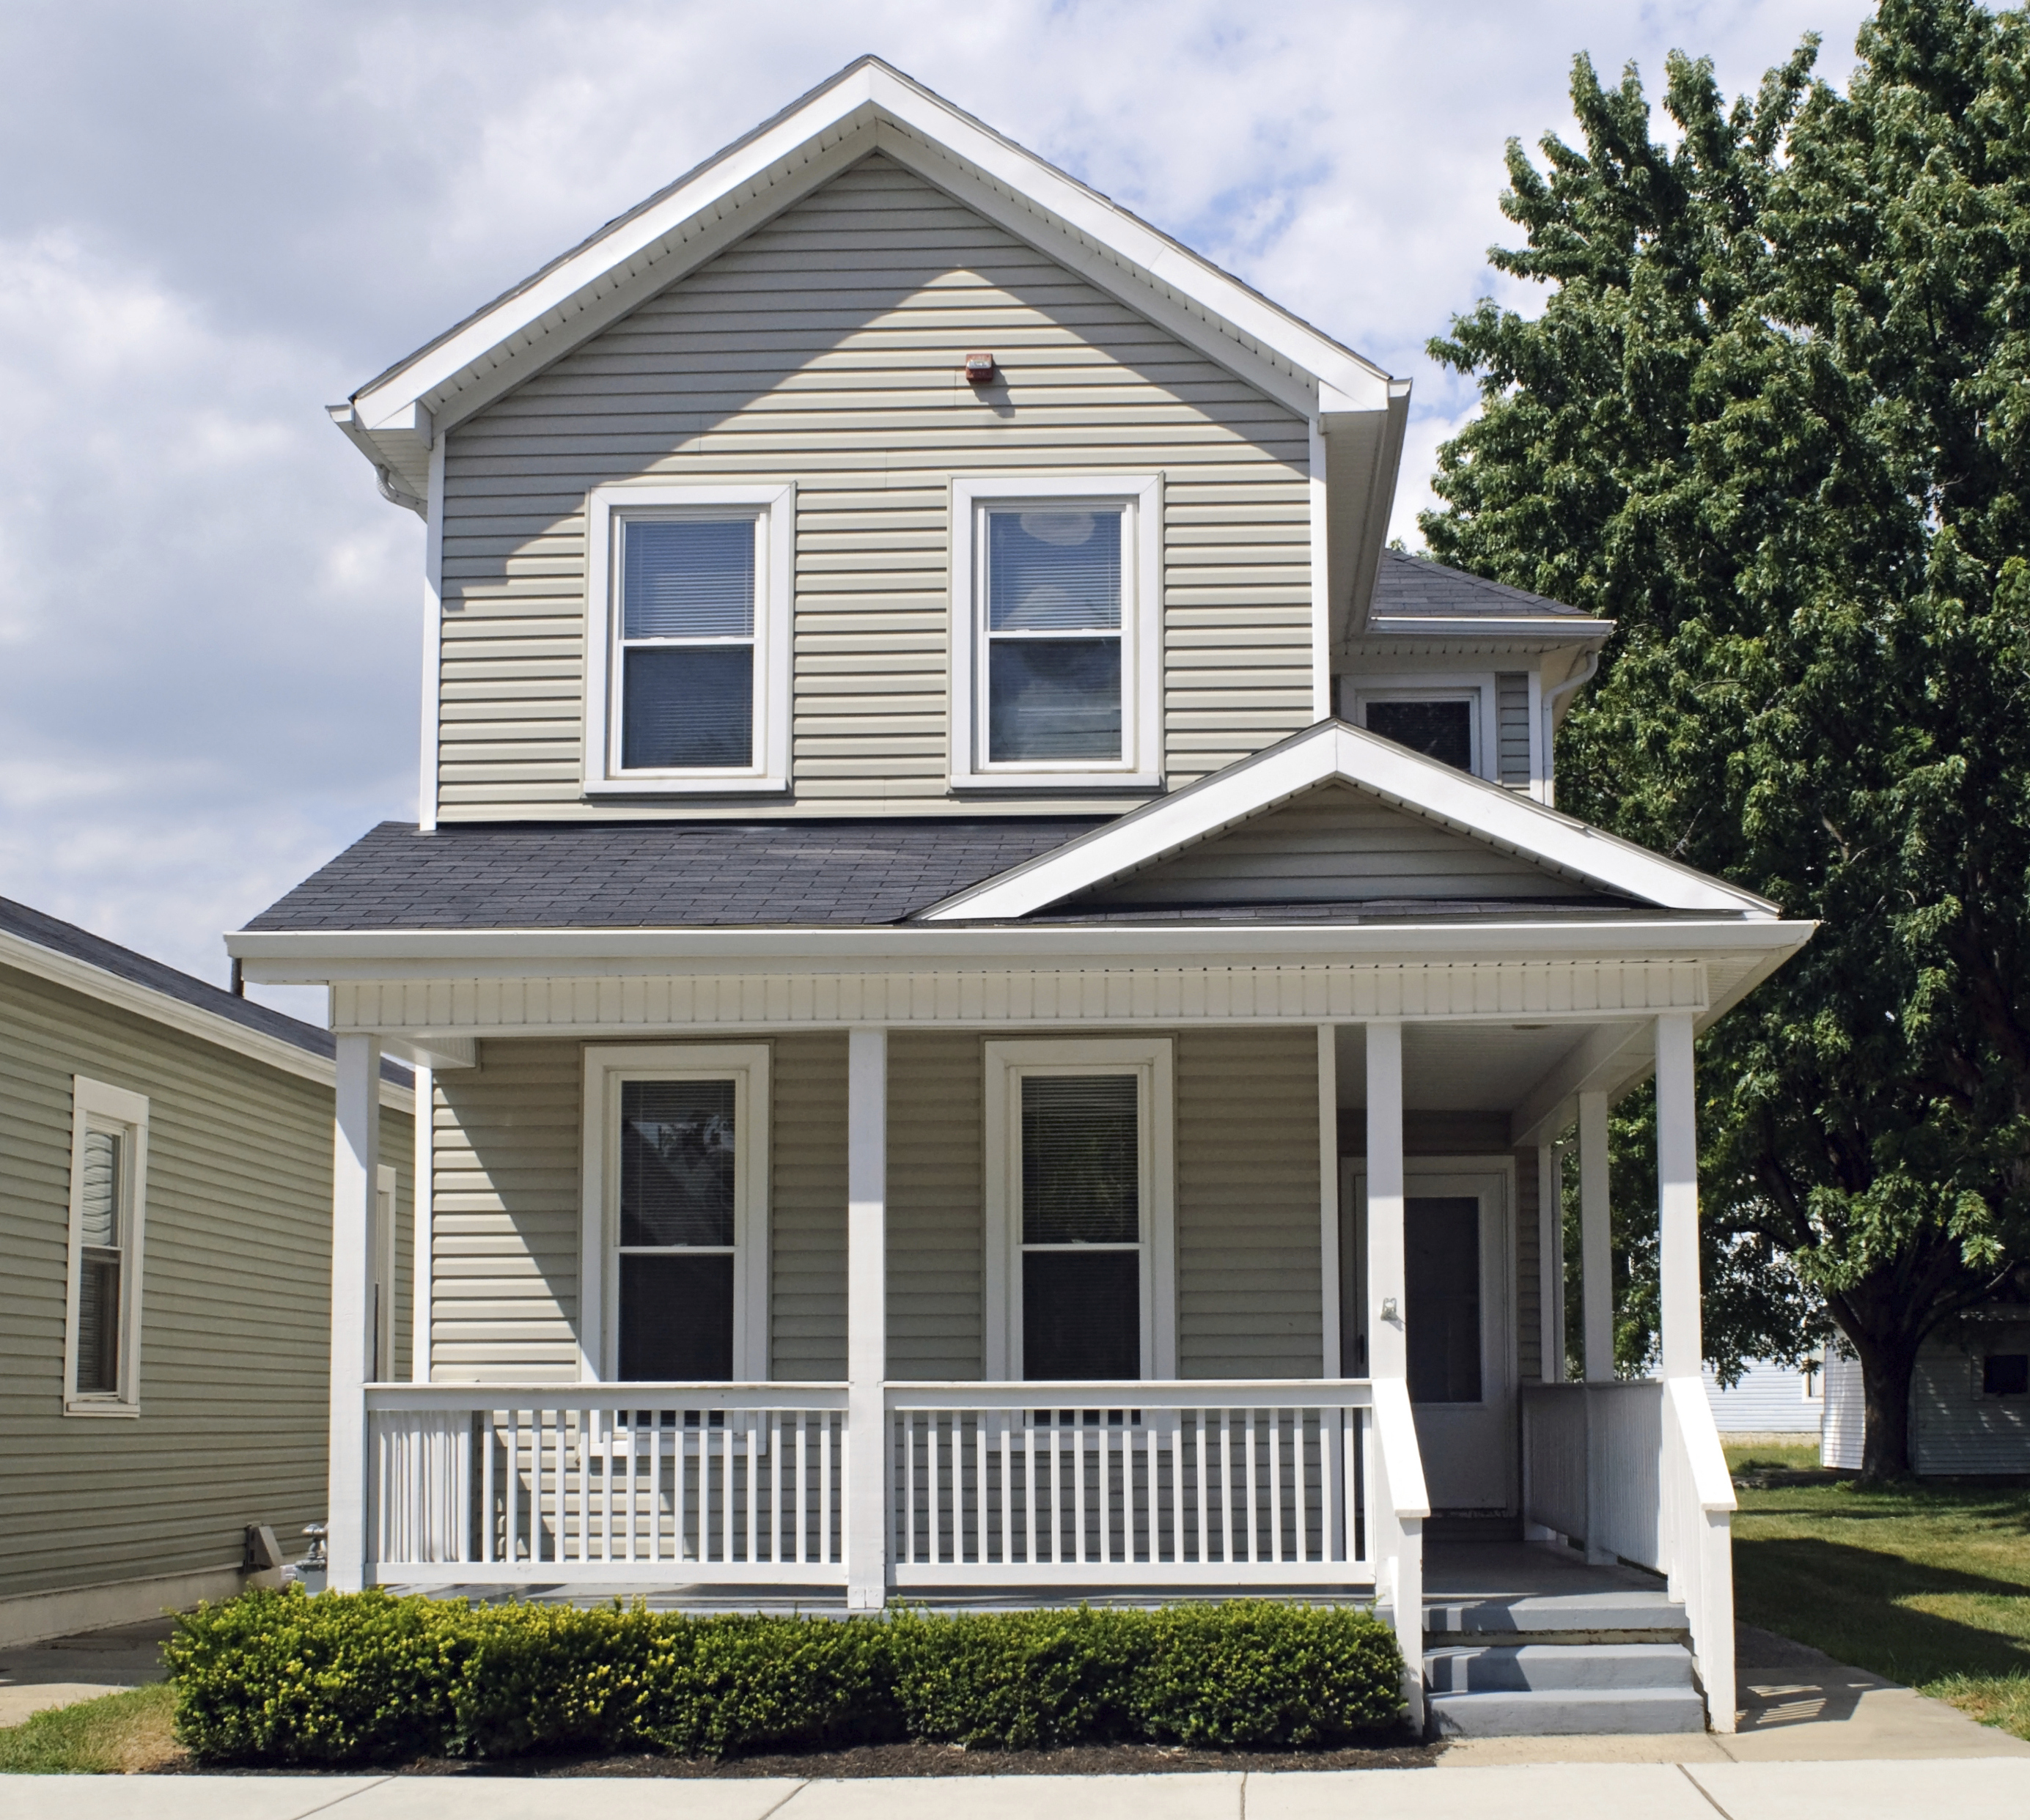 Small Porch Designs Can Have Massive Appeal: Restore Your Railings For A Curb Appeal Boost